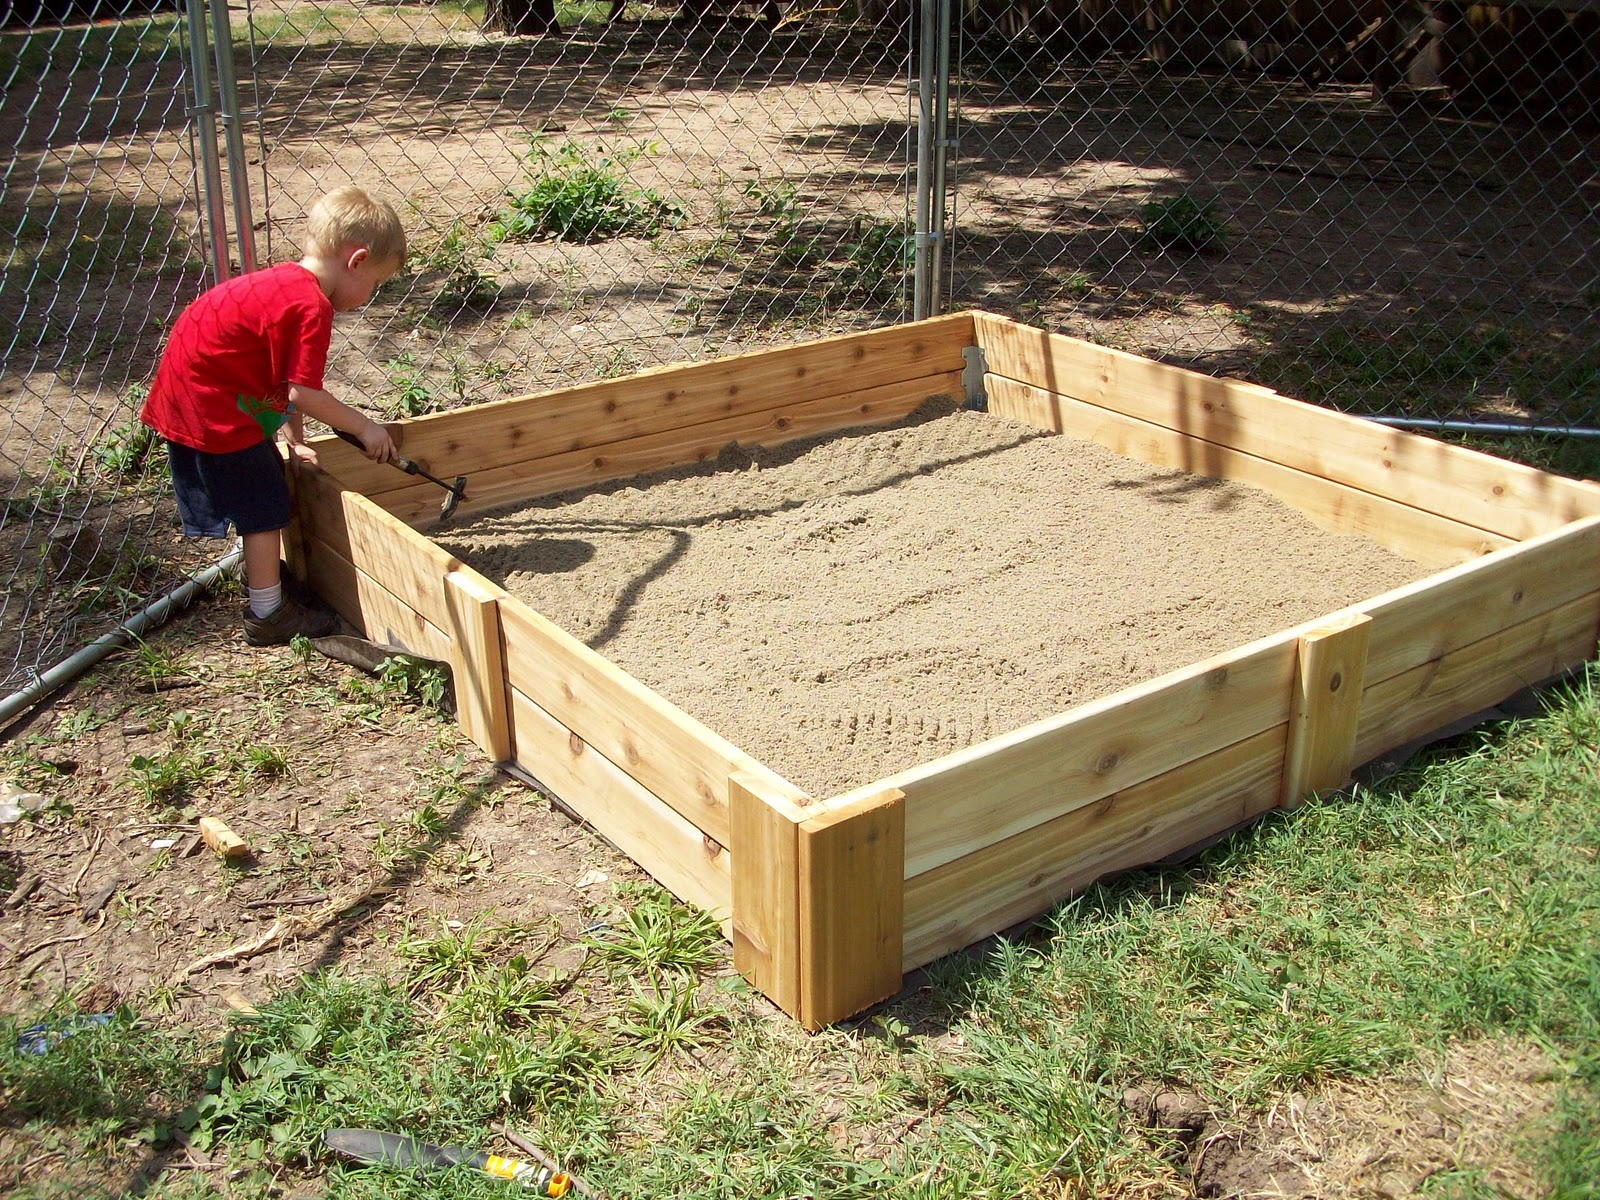 homestead roots sandbox for addies birthday could also